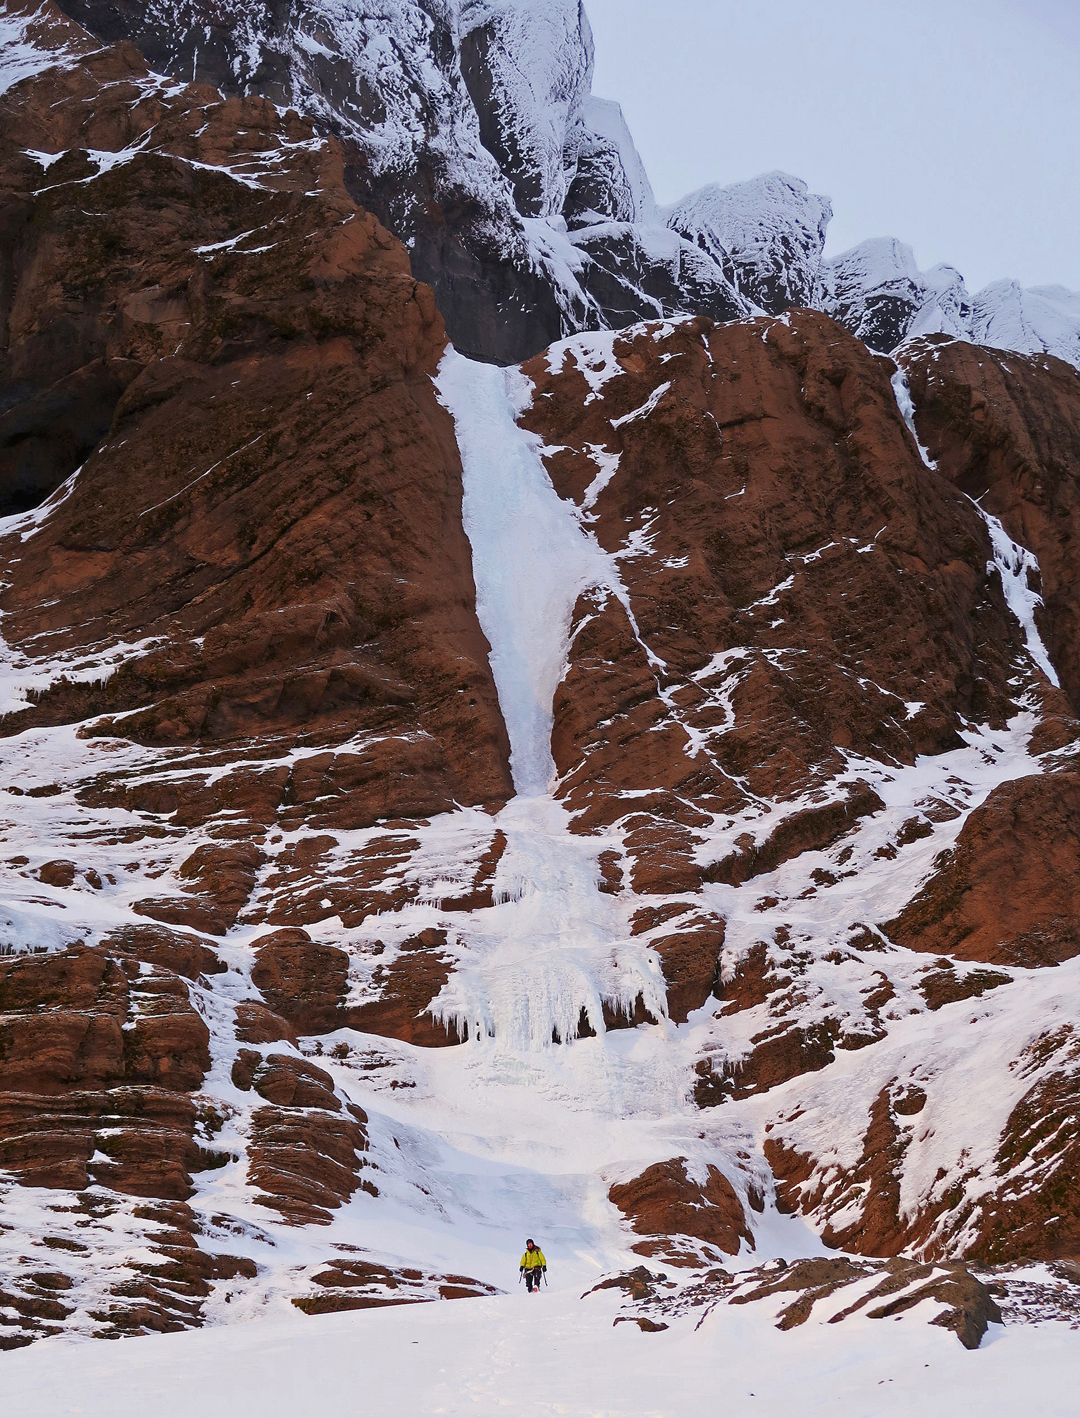 The initial icefall of End of the Line, southeast face of Skarðatindur.